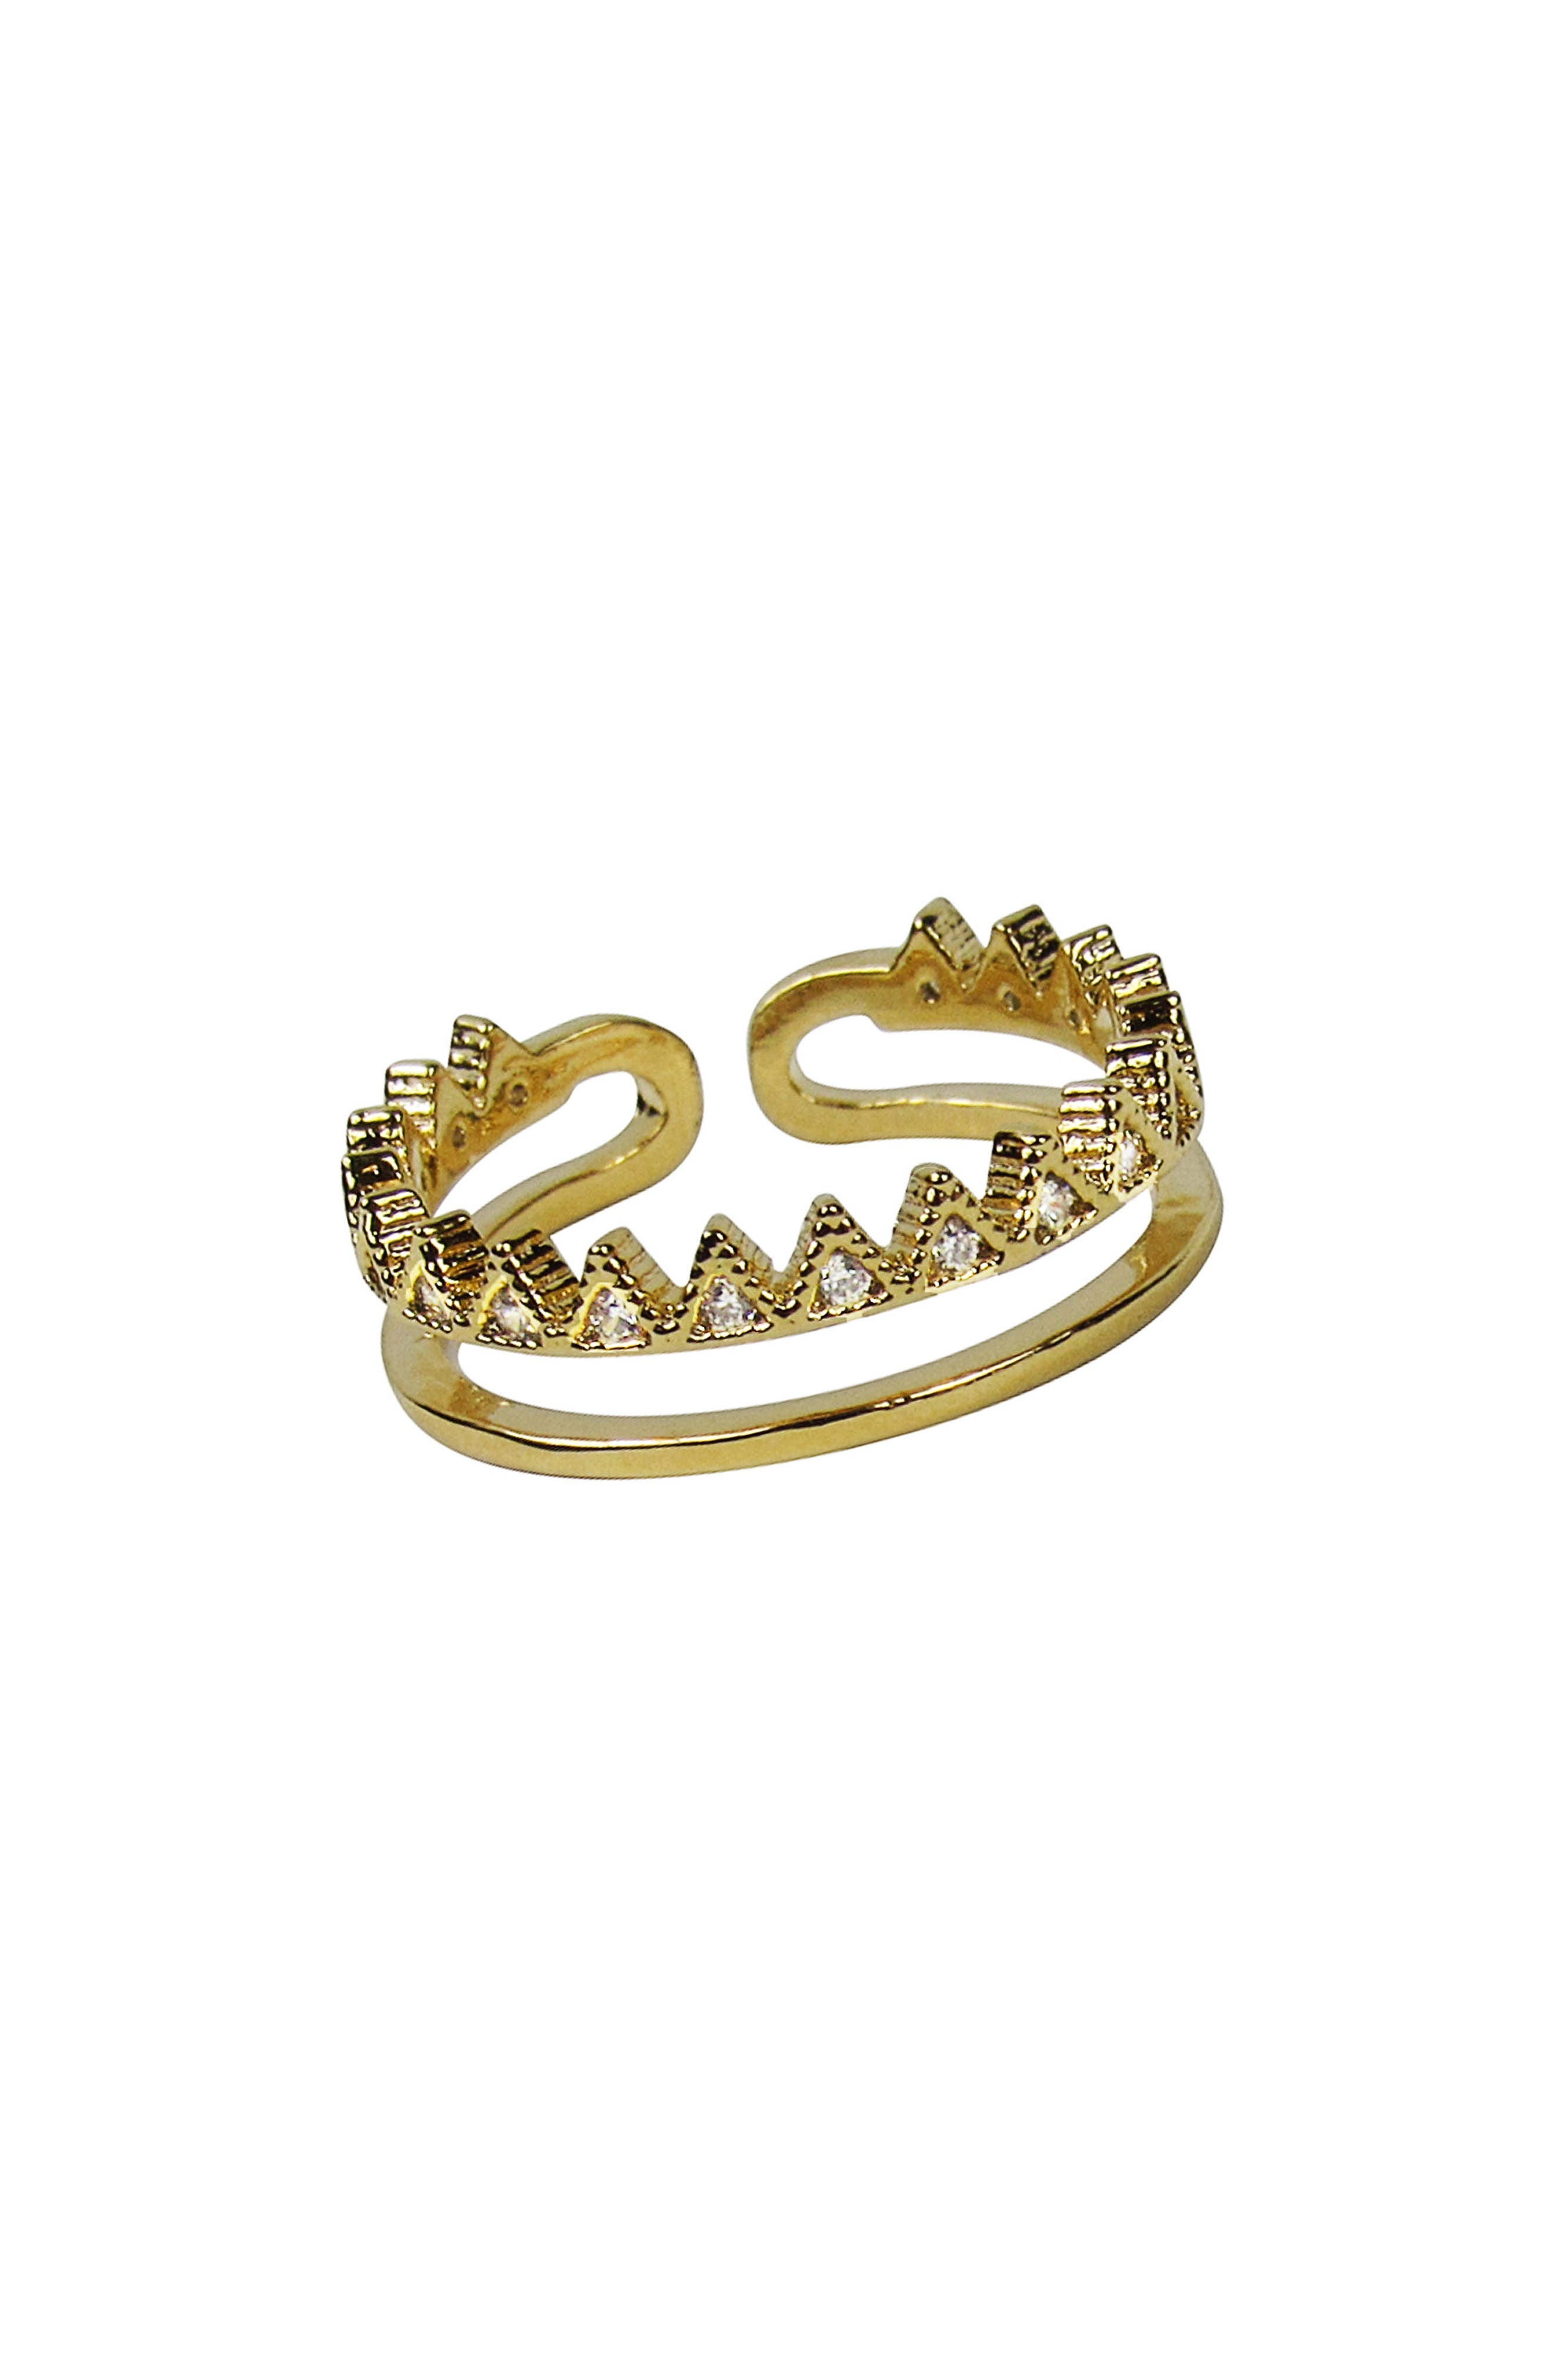 Royalty Open Ring,                         Main,                         color, Gold